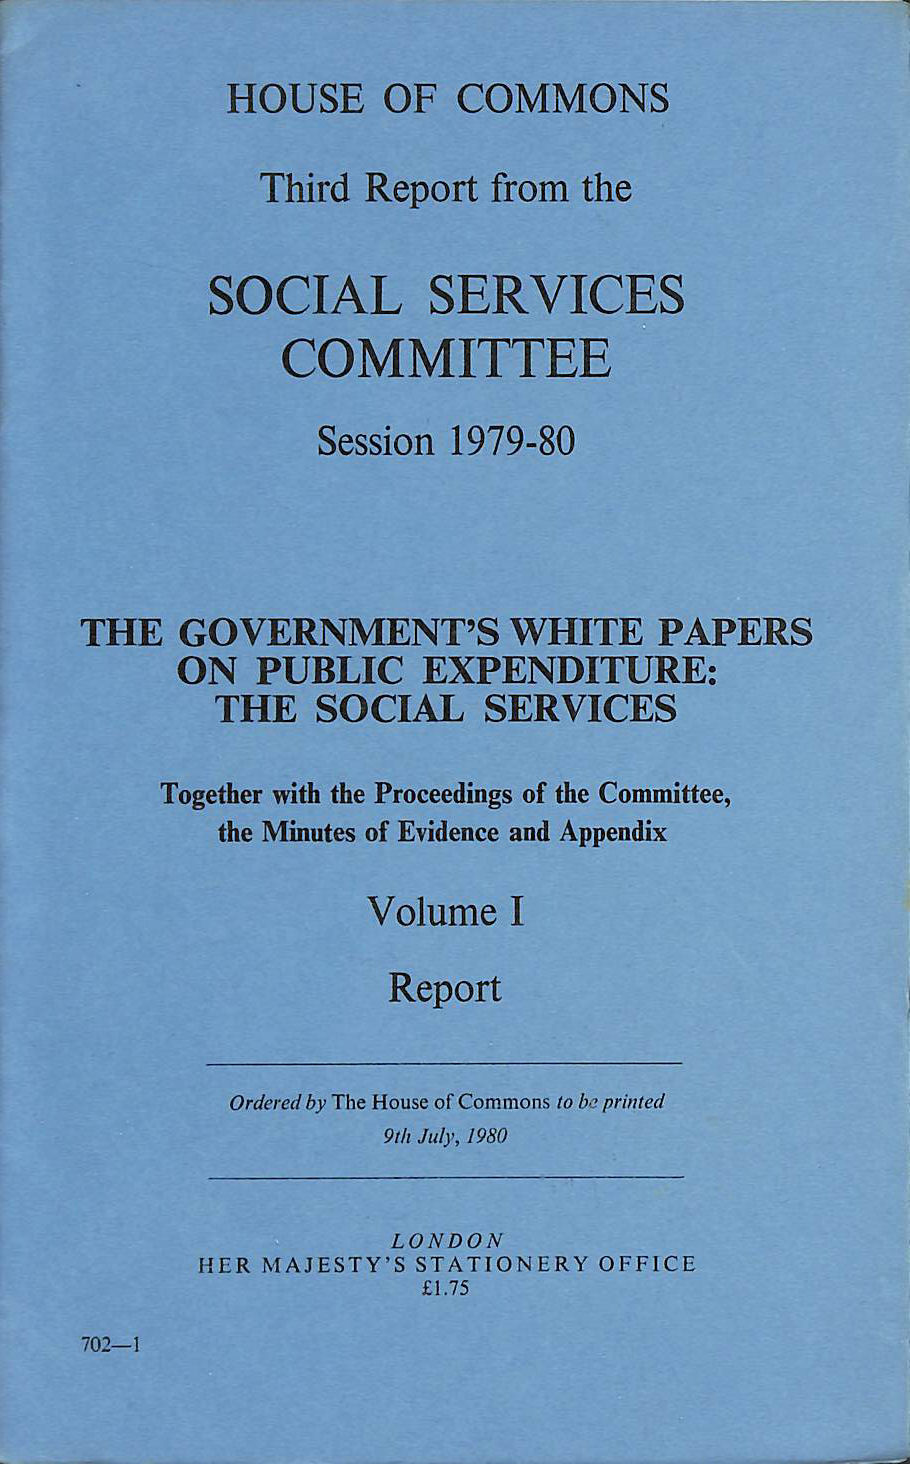 Image for The Government's white papers on public expenditure, the social services: Third report from the Social Services Committee, session 1979-80, together evidence and appendix ([1979-80 H.C.] 702 - I)